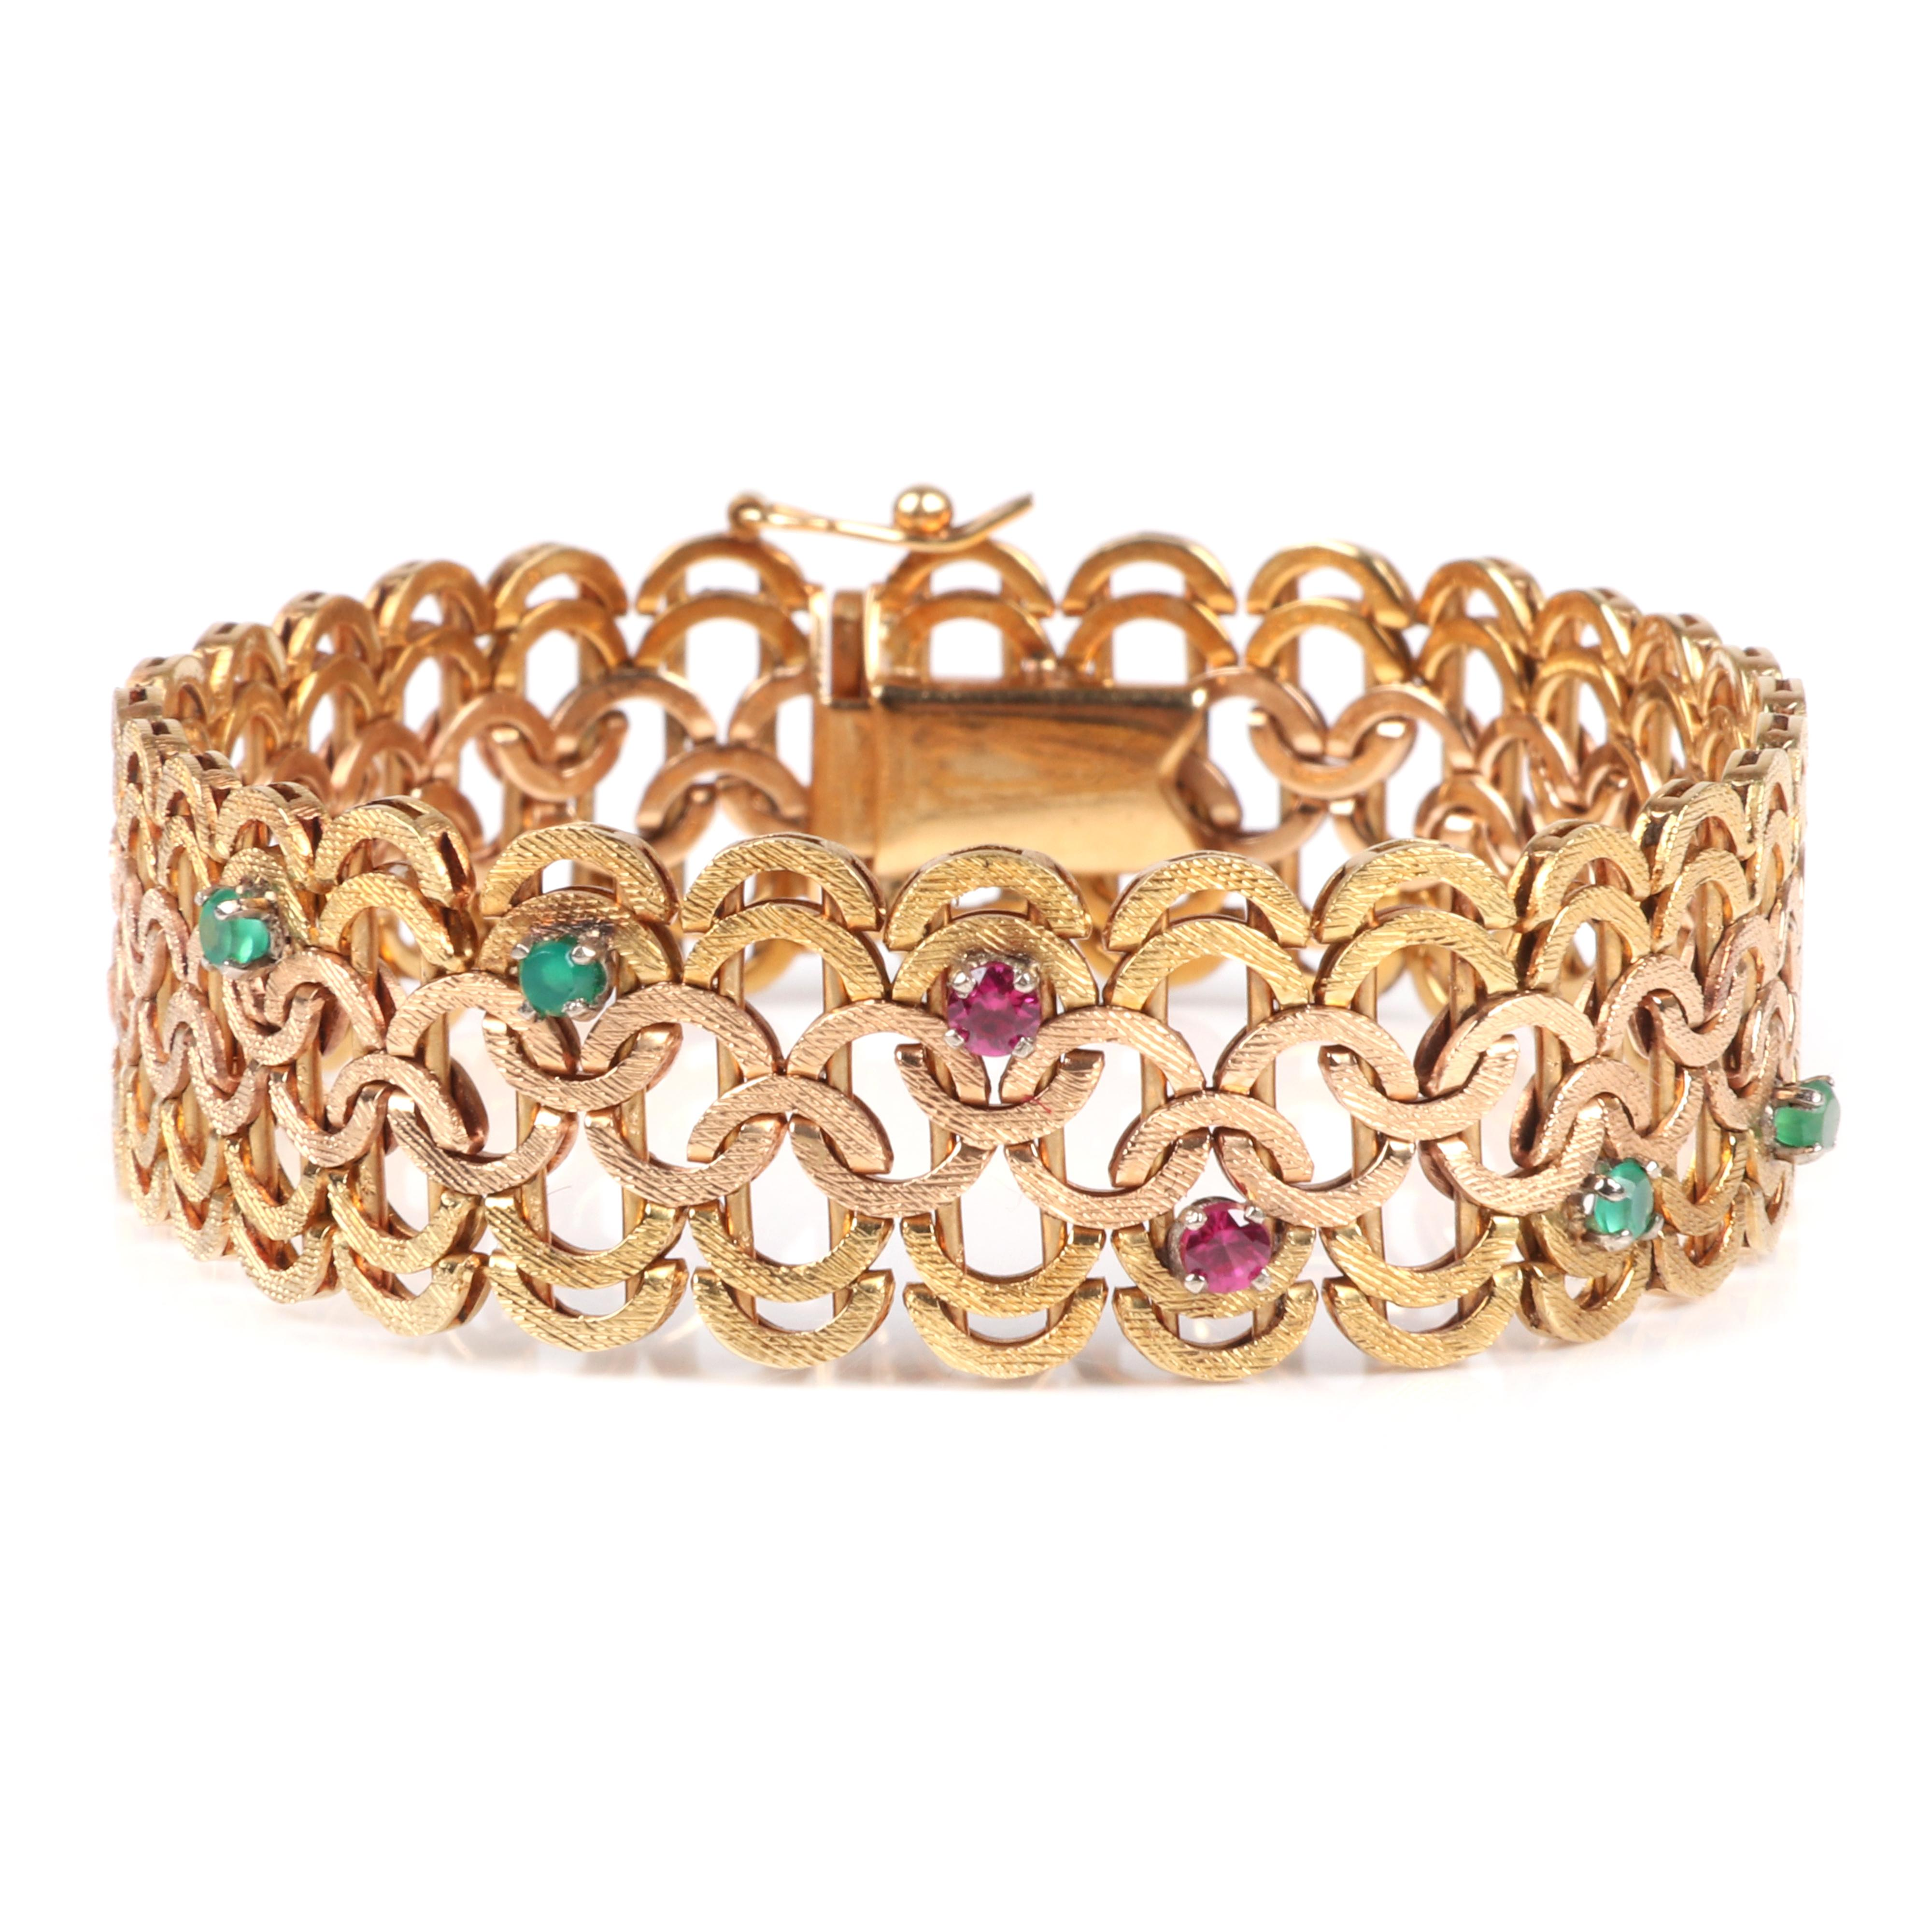 """Stamped 18K yellow antique gold 21.15dwt vintage retro estate bracelet with ruby and emerald gem accents in an interwoven open circle motif. 7 1/2""""L, 21.15 dwt"""